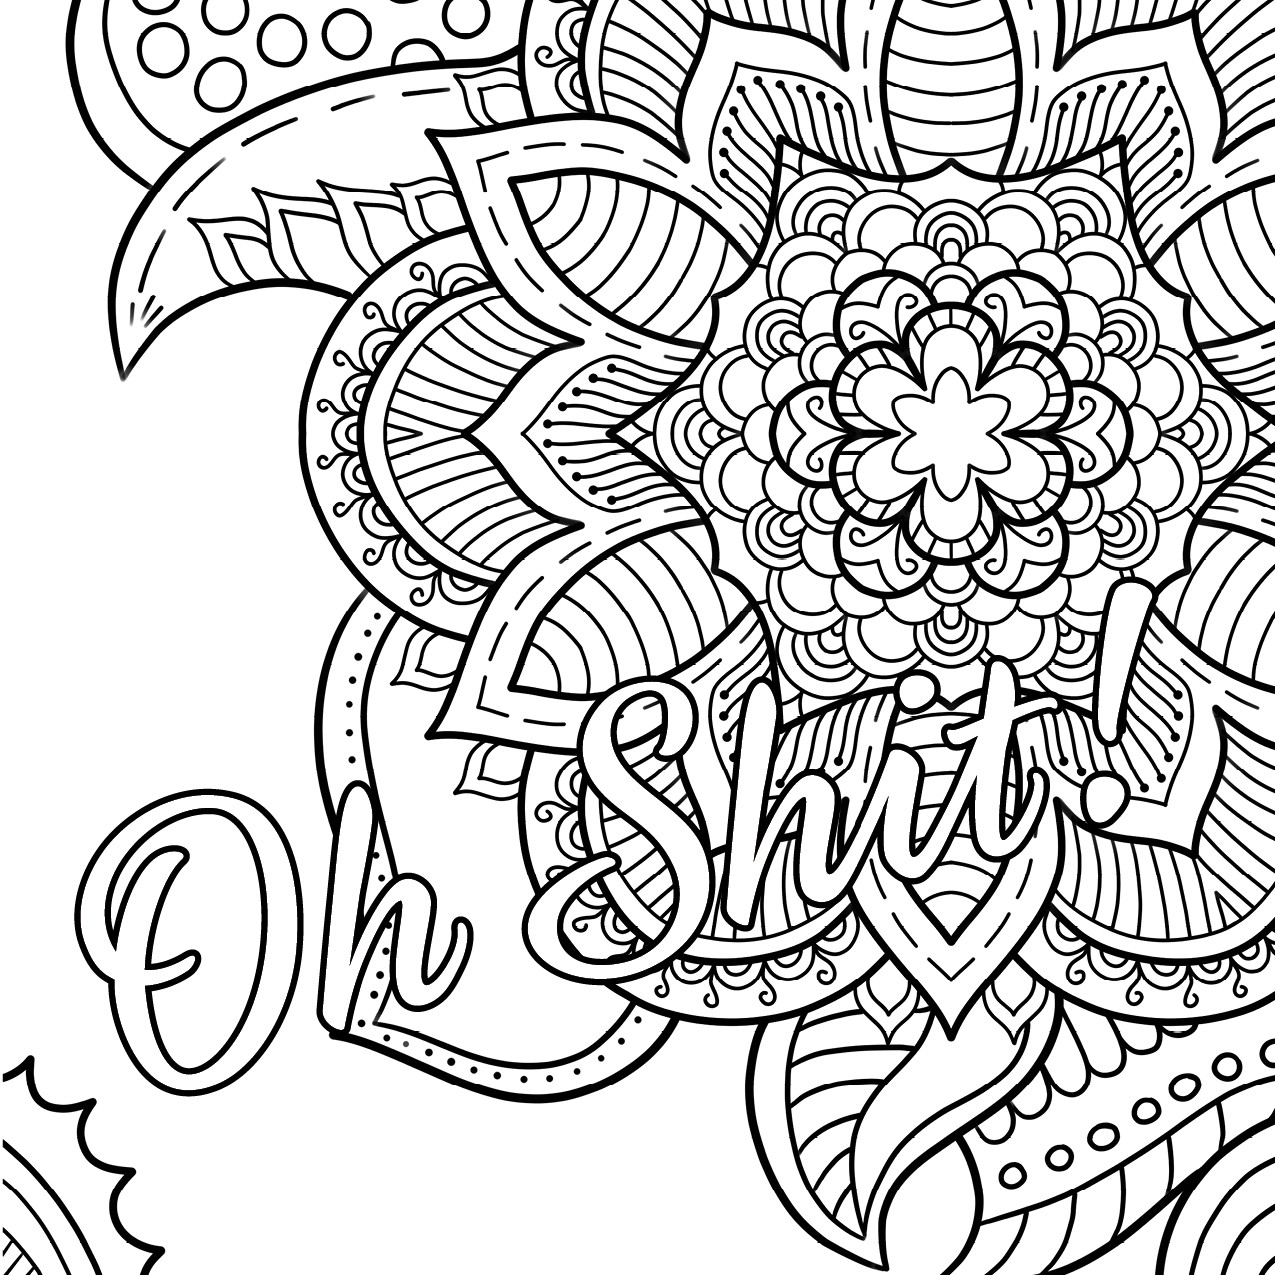 Printable Curse Word Coloring Pages at GetDrawings | Free ...